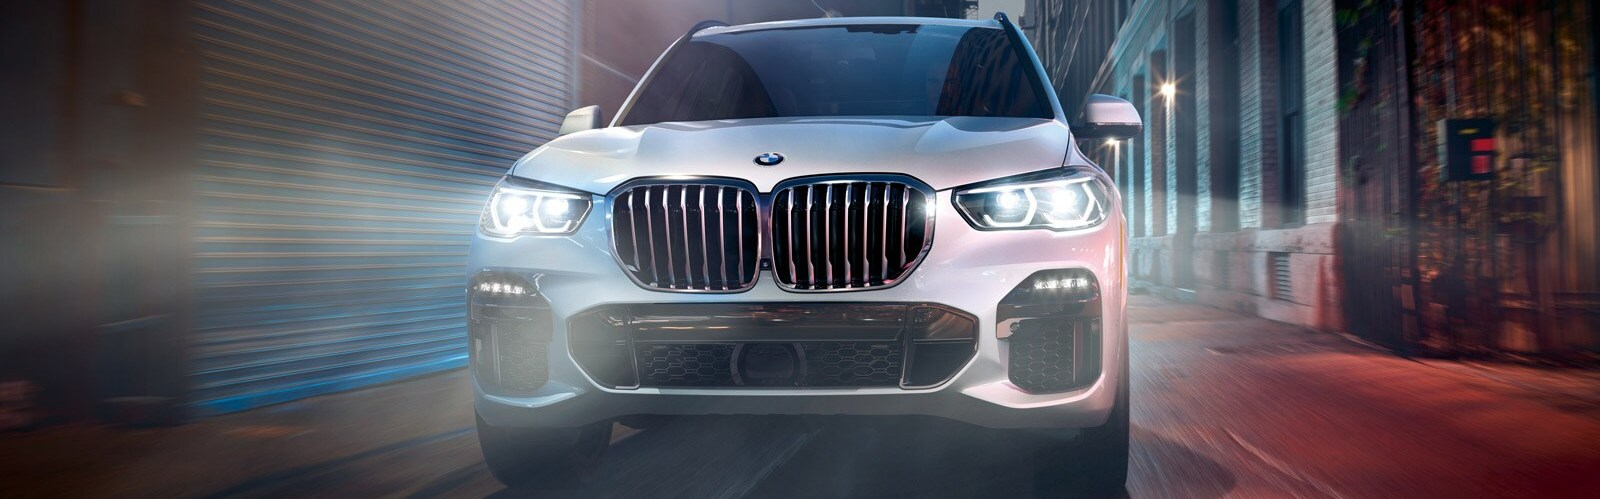 Bmw X5 2020 For Sale Near Me